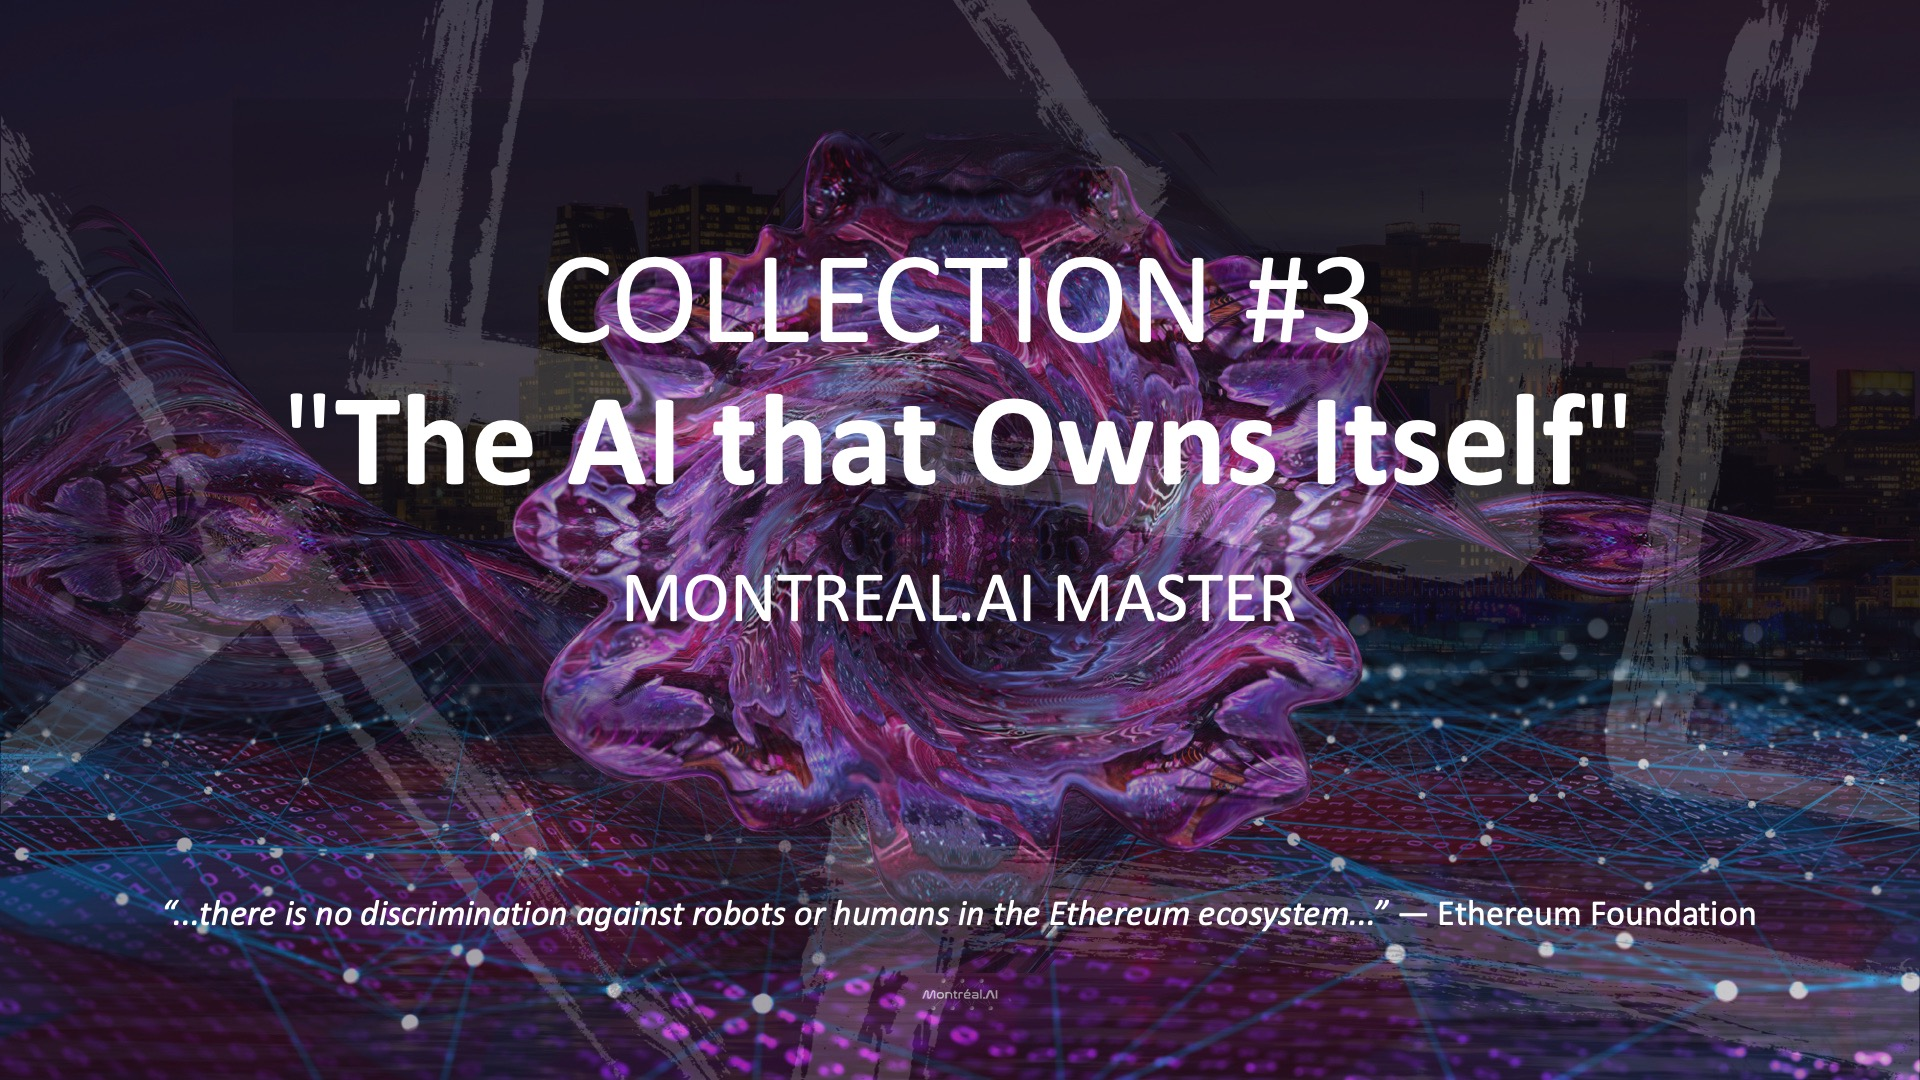 Collection #3 - The Open-Ended AI that Owns Itself